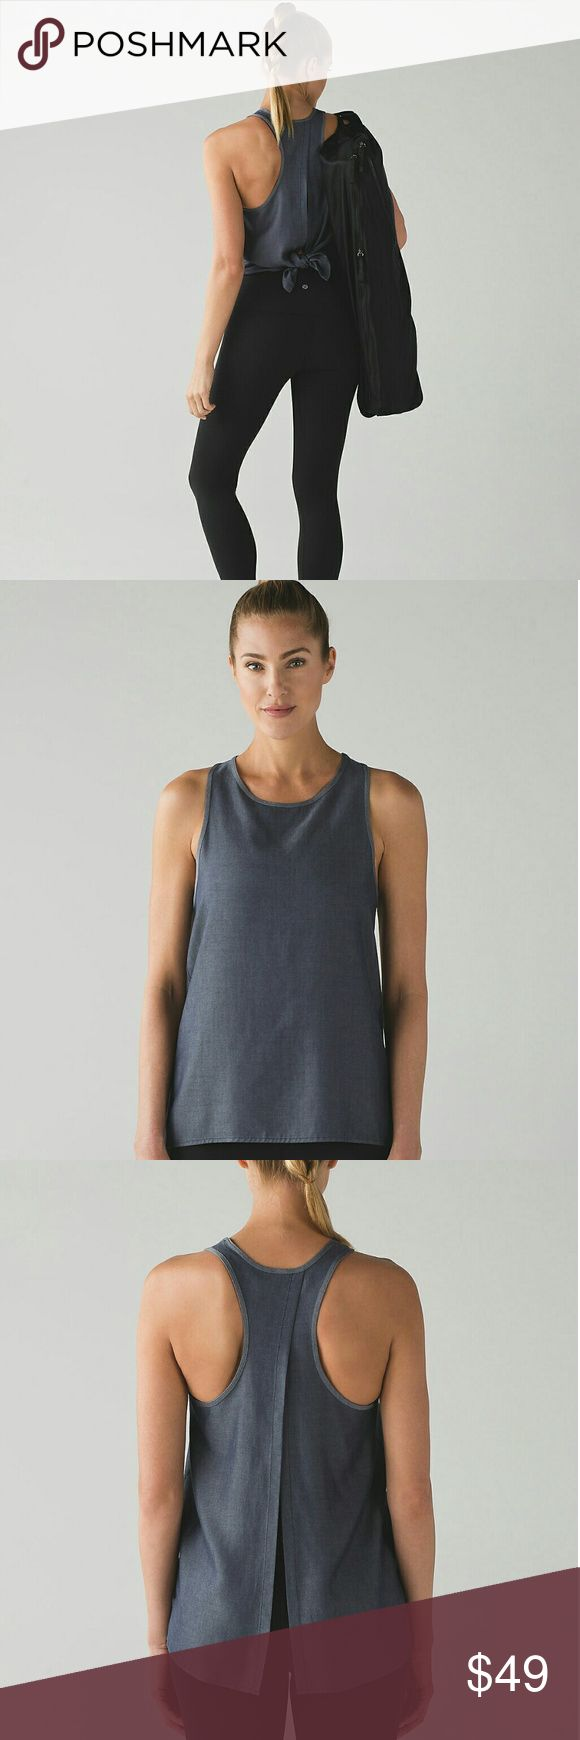 ❤Lululemon Athletica All Tied Up Tank 100% Tencel New with tags, never used. Women's size 10. Color Deep Navy. 100% Tencel Lyocell. lululemon athletica Tops Tank Tops